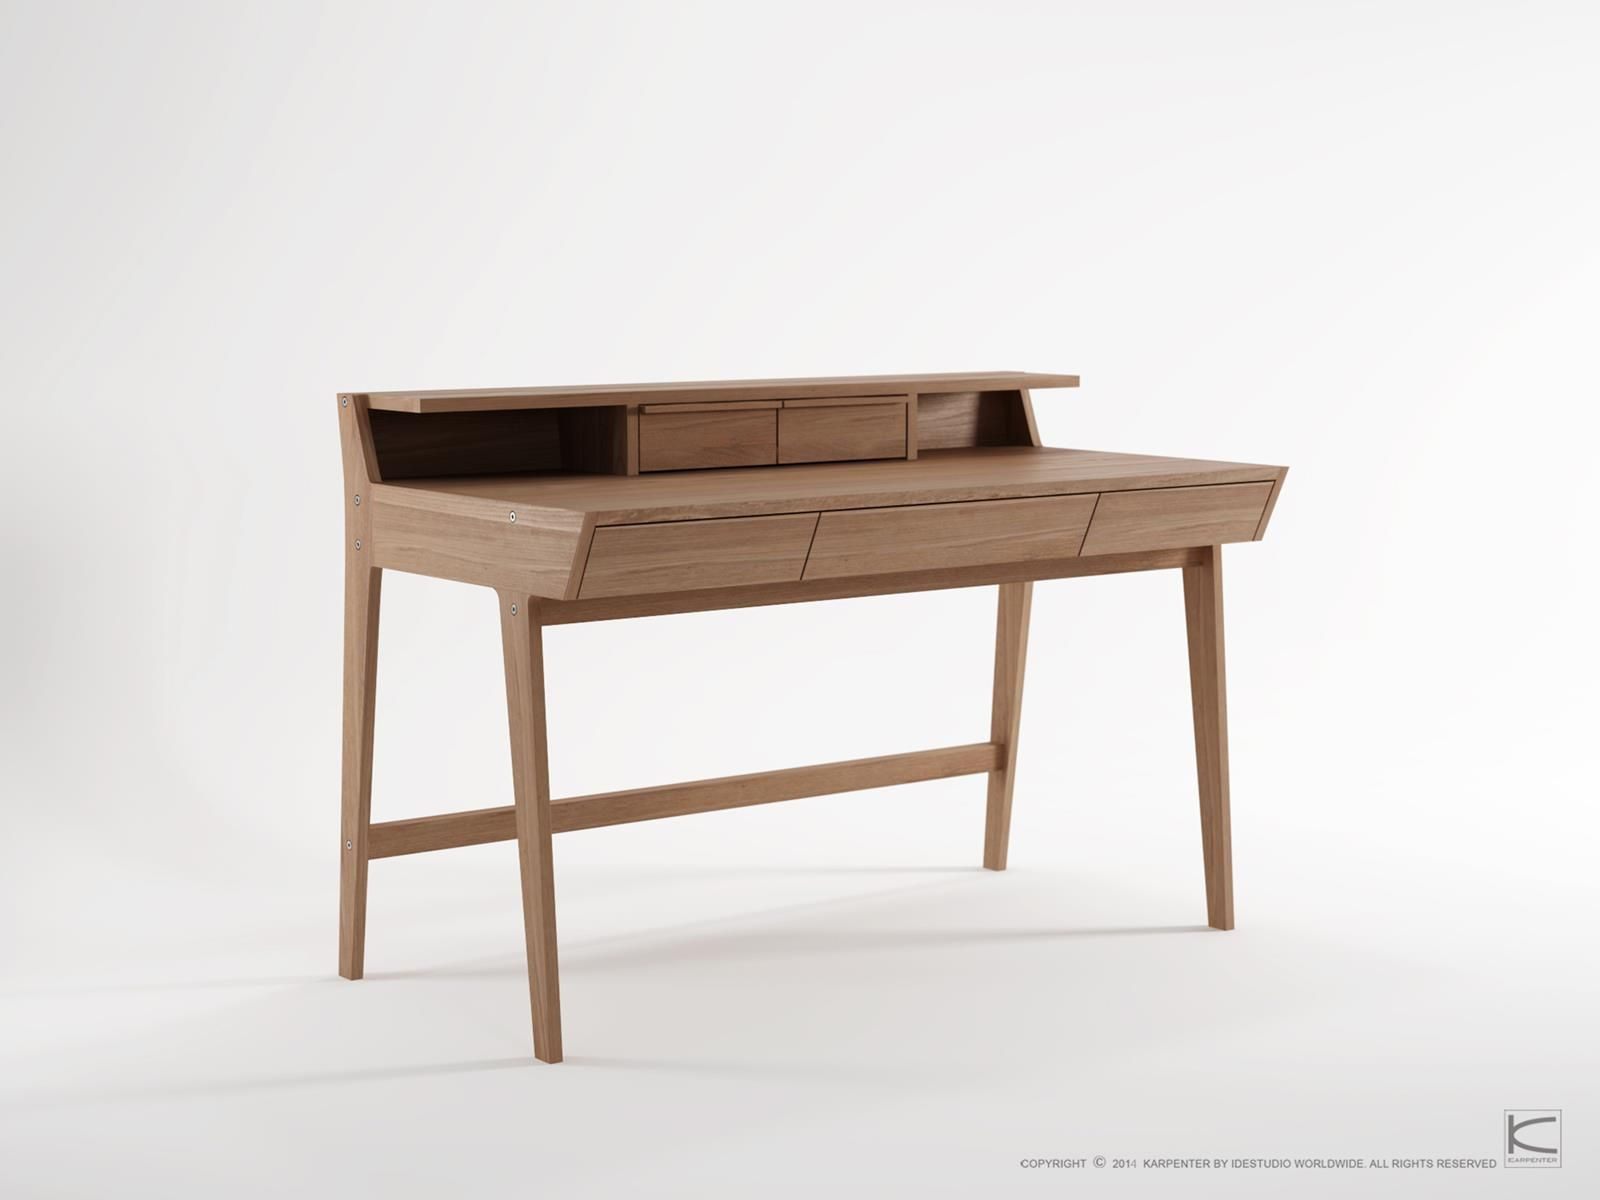 The Karpenter Writing Desk Draws On Inspiration From The Clean Lines And Soft Angles Of Scandin Wooden Writing Desk Desk With Drawers Writing Desk With Drawers